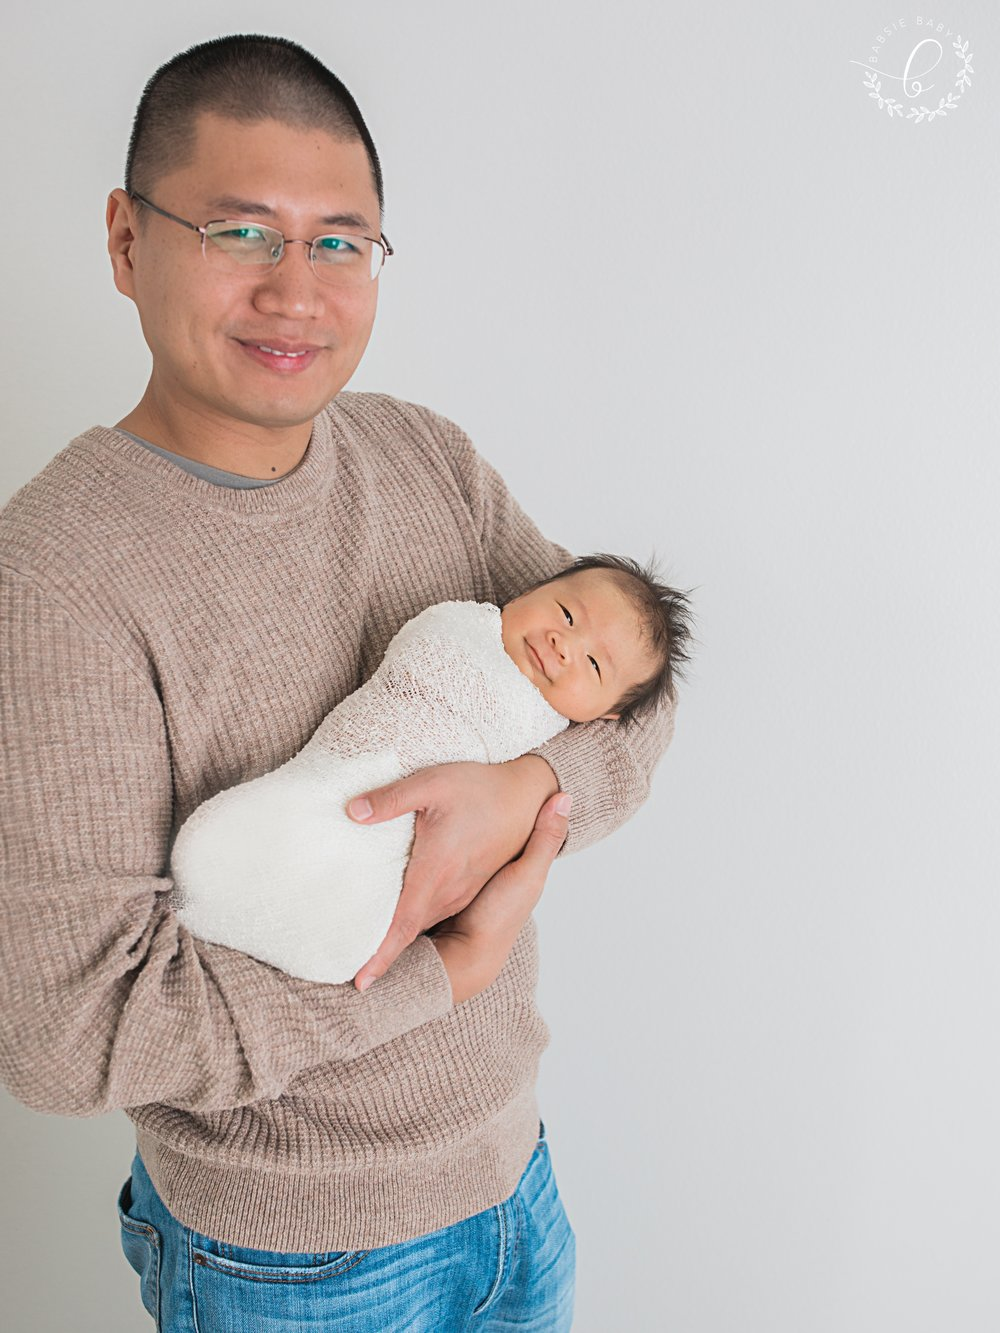 Babsie-Baby-Photography-Ian-1-month-old-newborn-daddy-and-son-korean-San-Diego-Oceanside-California-013.JPG